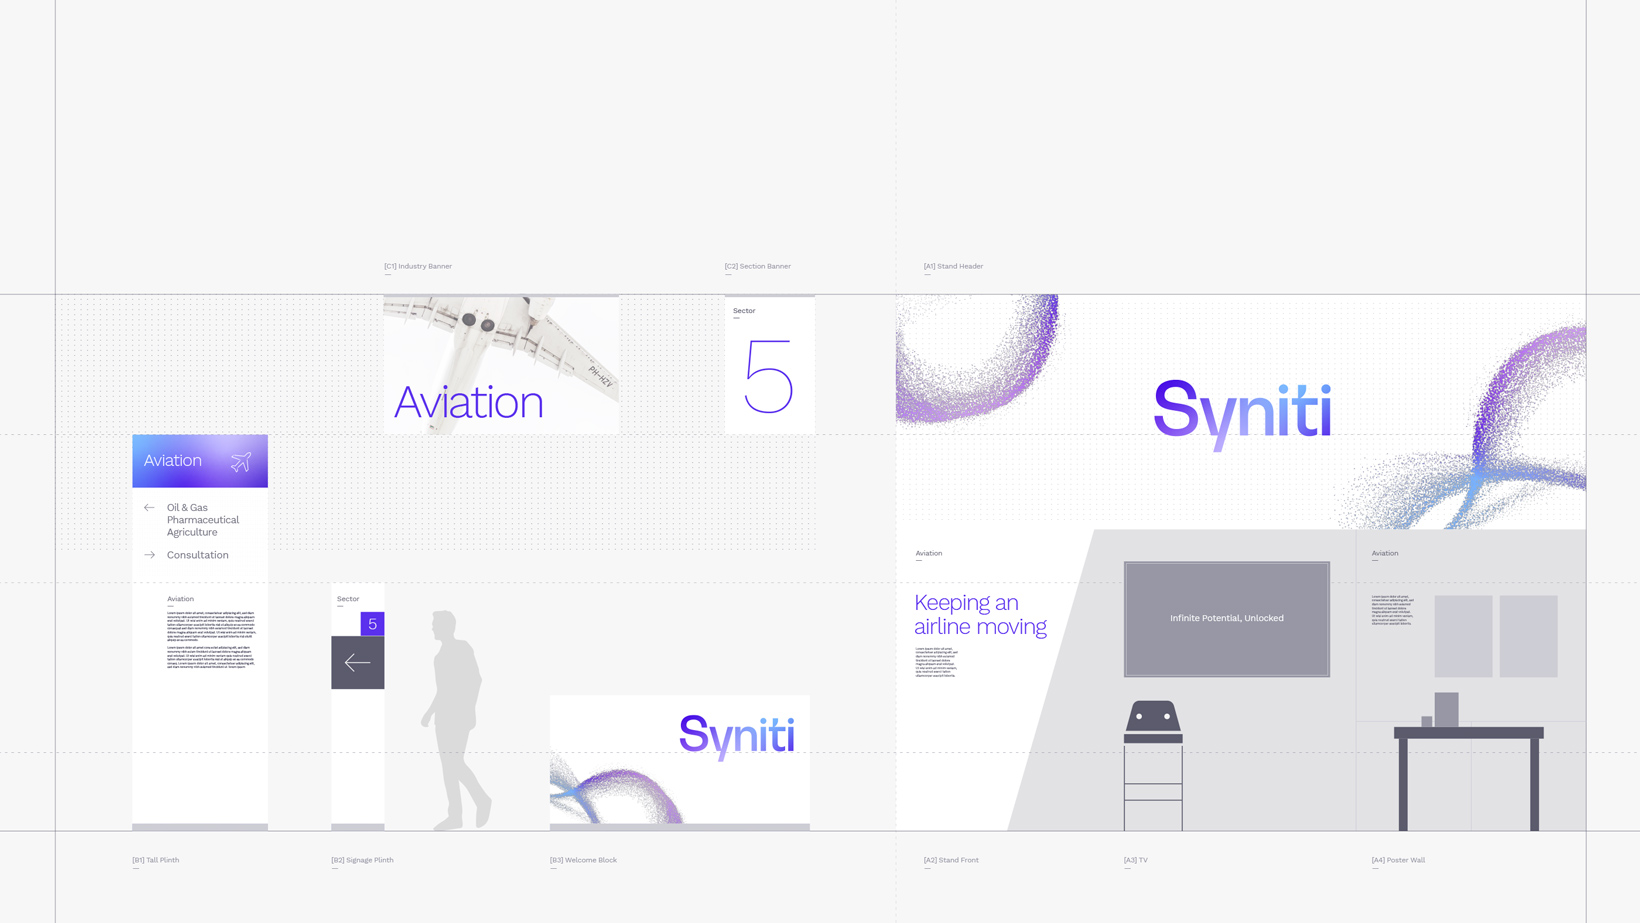 Confederation-Studio-Syniti-Branding-Conference-Graphics-1.jpg